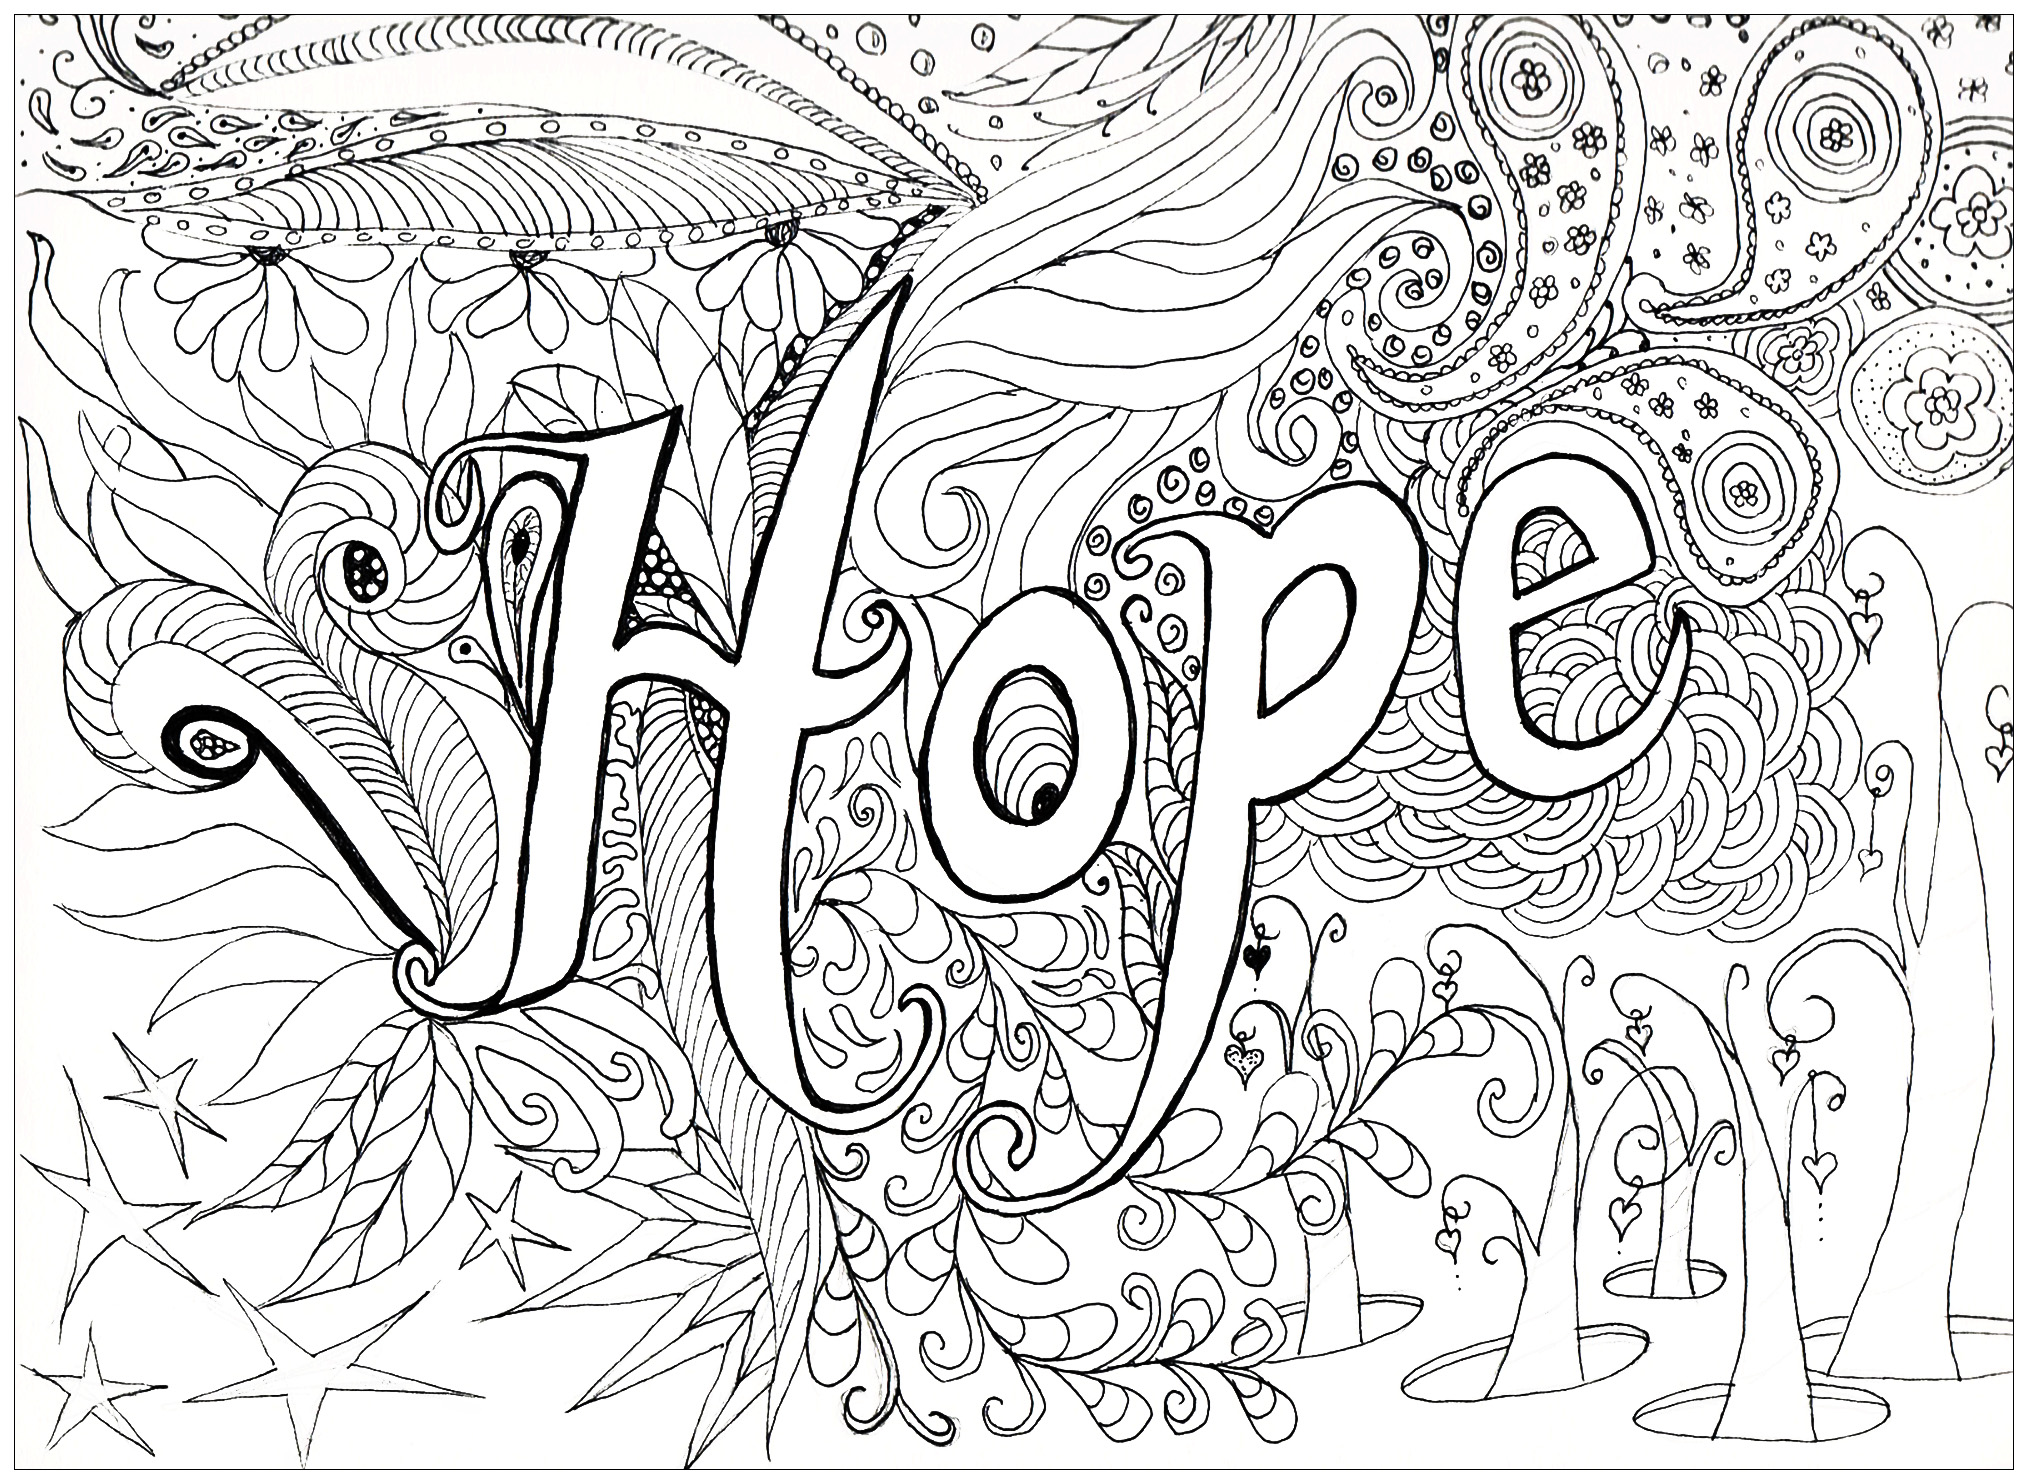 Pages hope | From the gallery : Zen & Anti Stress